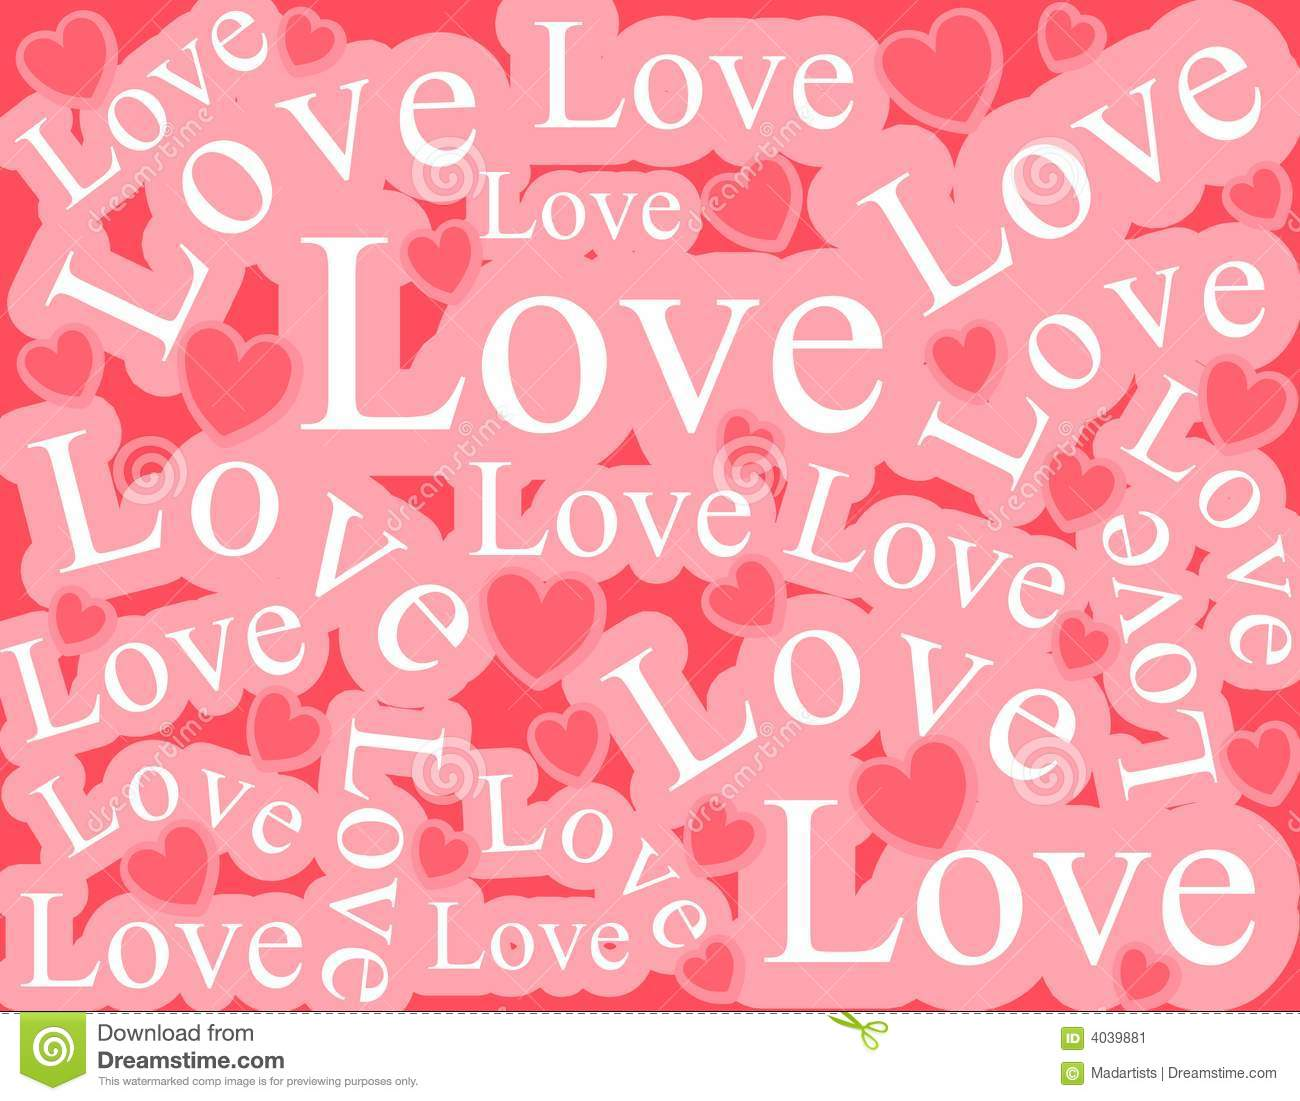 Love Wallpaper In Words : Words Of Love Background Pattern Stock Image - Image: 4039881